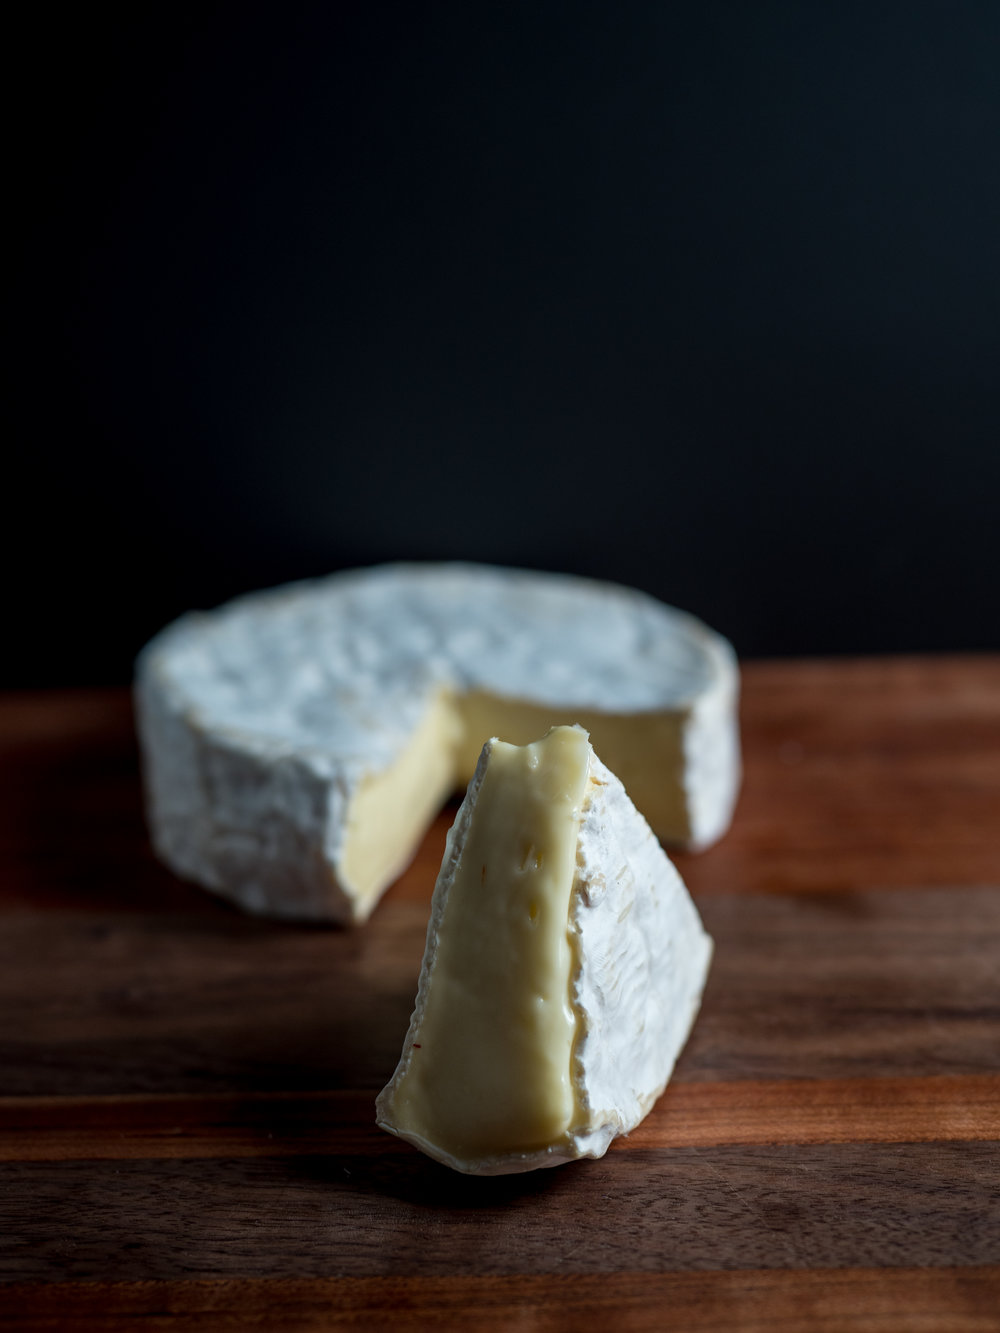 Musings by the Glass - Ode to Spanish Wine and Cheese - Soft and Creamy Cow's Milk Cheese